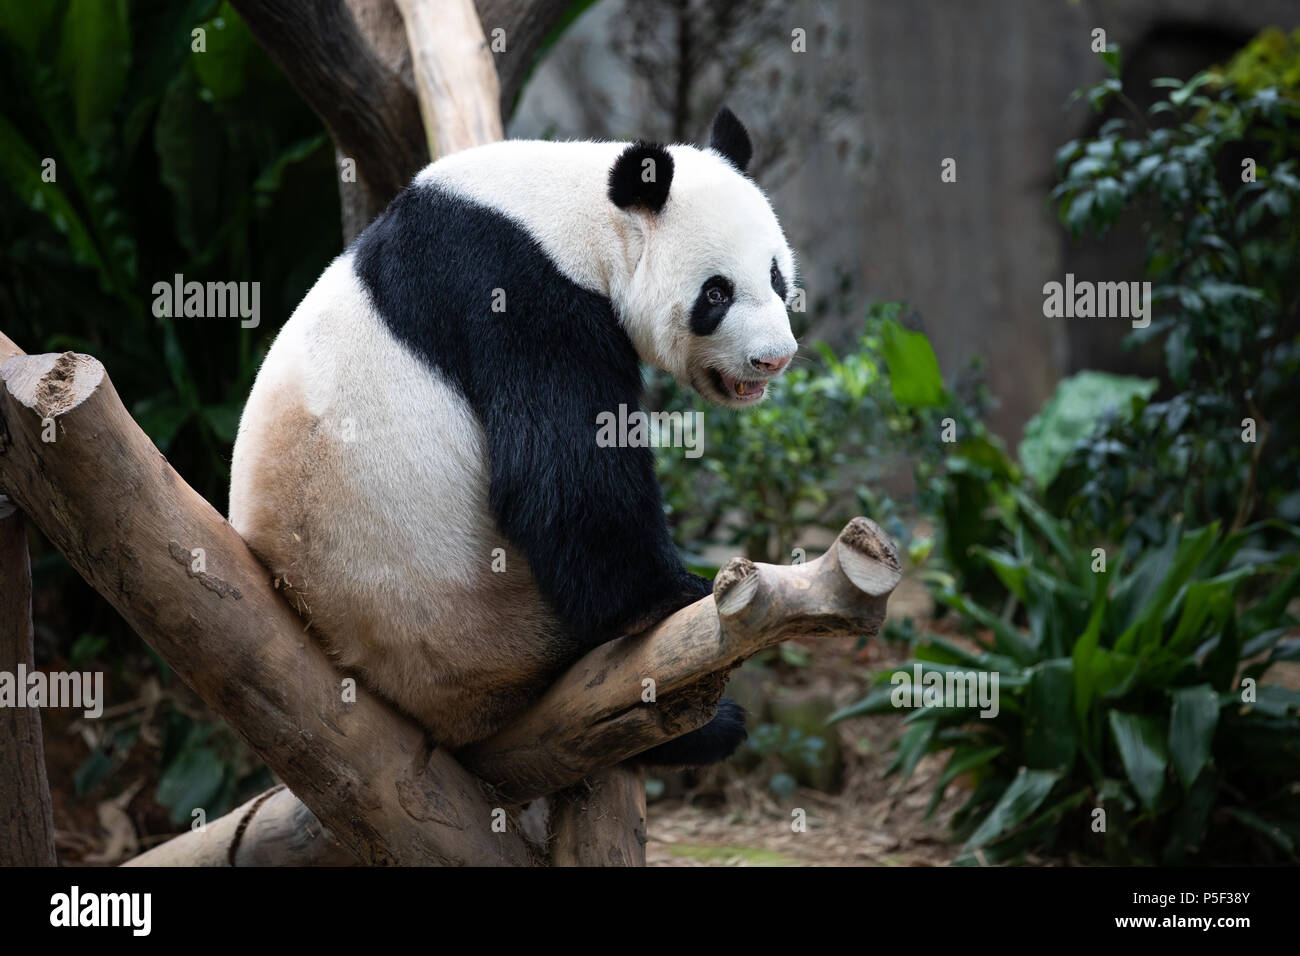 Portrait of an endangered black and white panda bear sitting on a tree branch. Singapore. - Stock Image